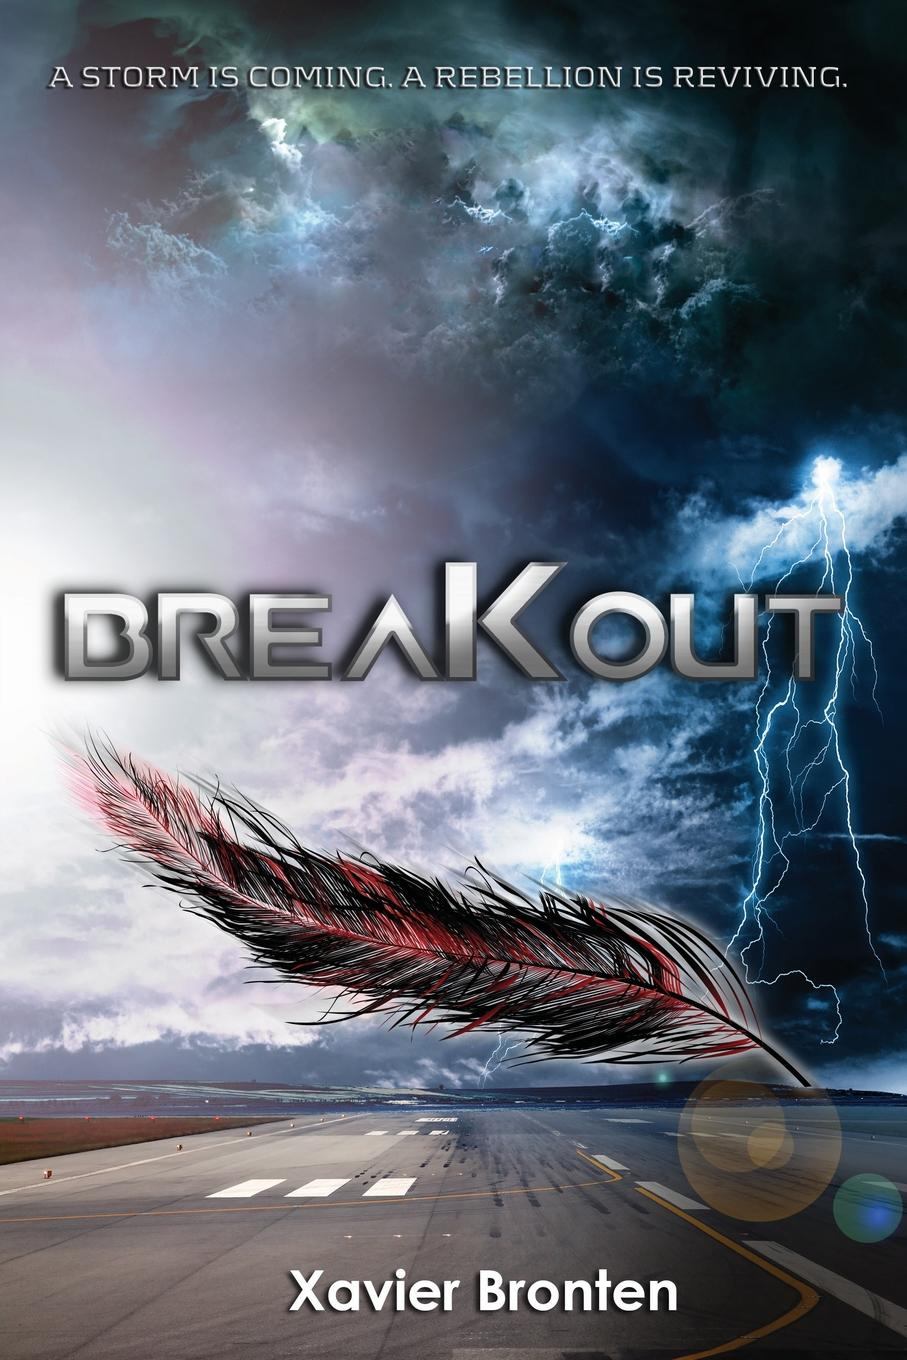 Xavier Bronten Breakout. A Storm is Coming. A Rebellion is Reviving.